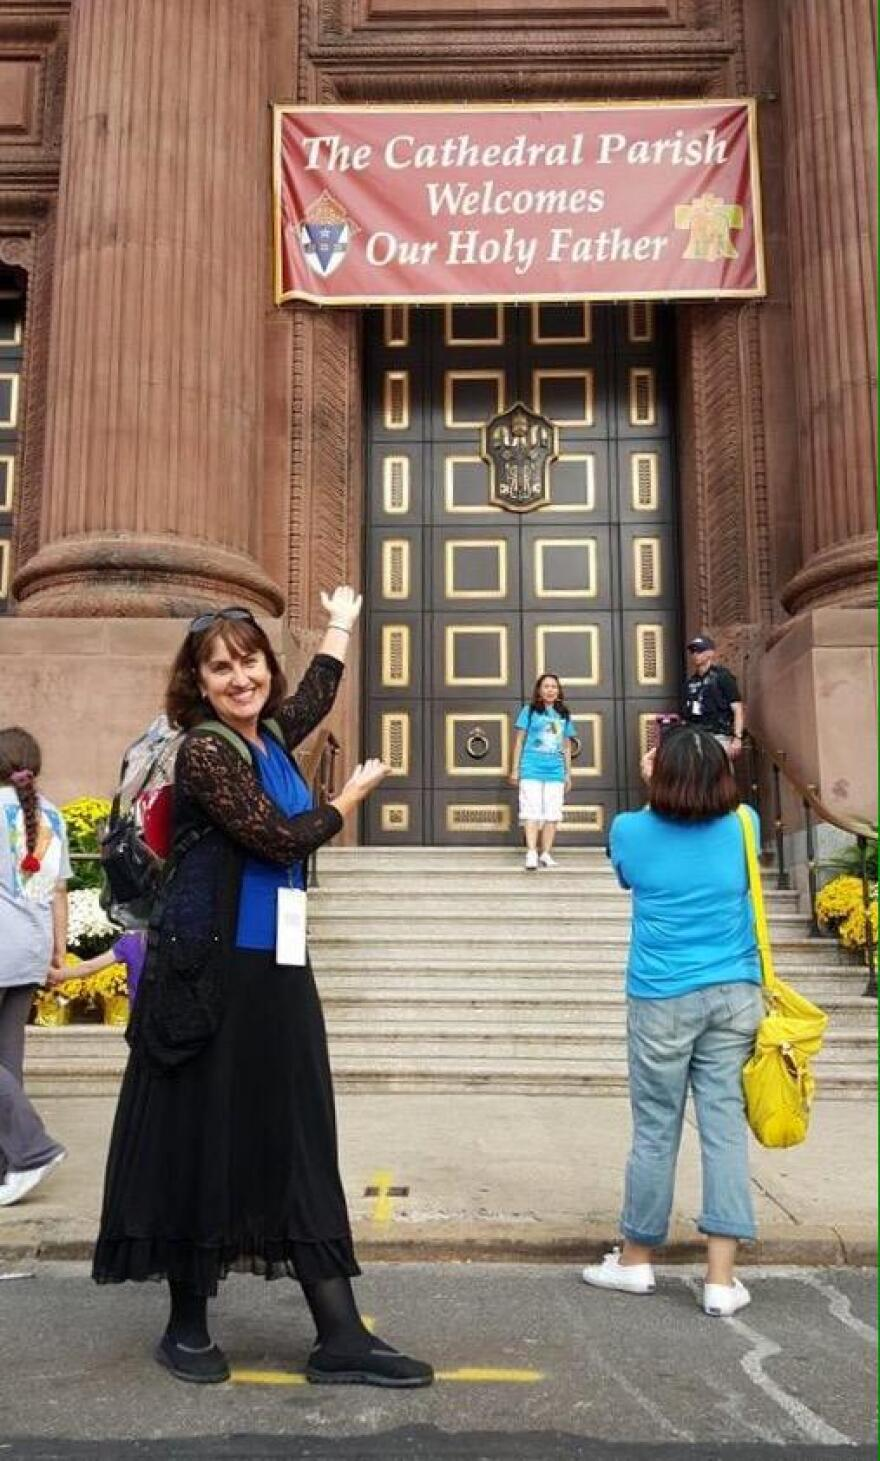 St. Louis-based author Alicia von Stamwitz said she was moved by the reasons some people in the crowds came to see Pope Francis in Philadelphia.